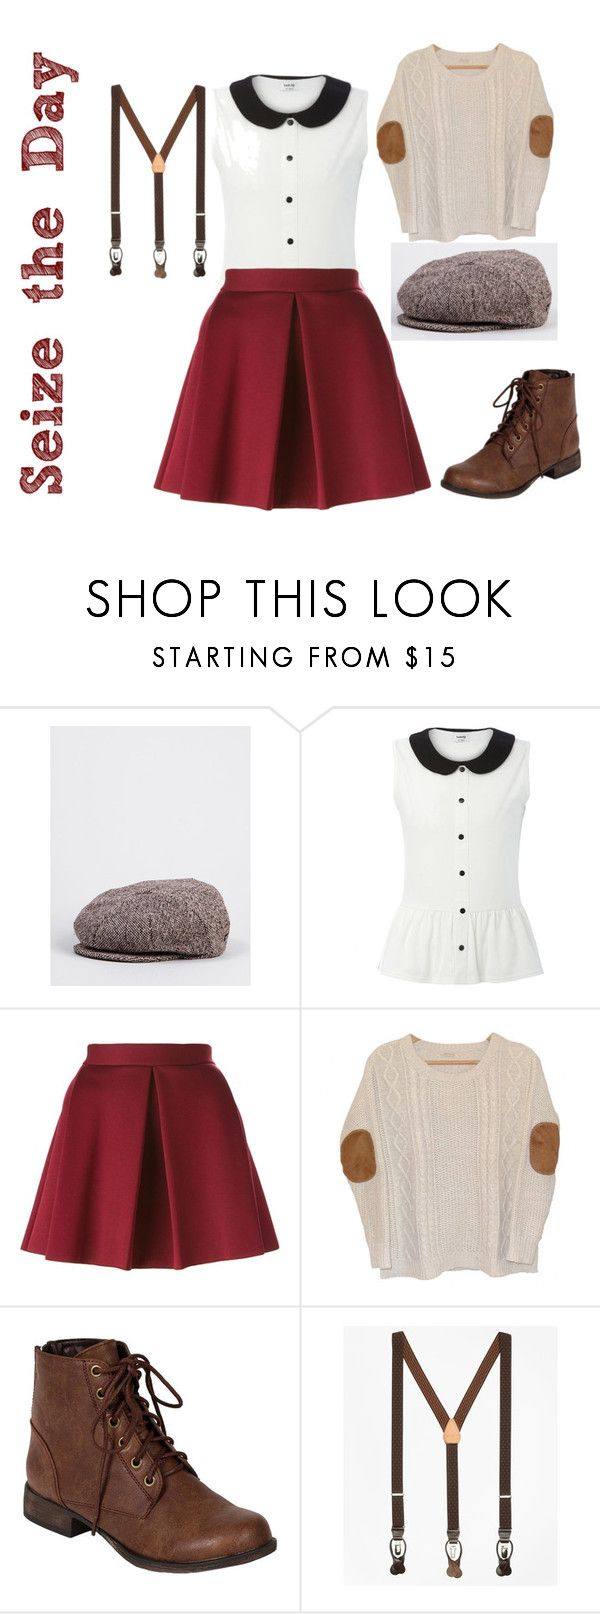 """""""Headlines don't sell papes. Newsies sell papes."""" by bethanunny ❤ liked on Polyvore featuring Bailey, P.A.R.O.S.H., Urban Outfitters, Breckelle's, Brooks Brothers, disney, newsies and broadway"""